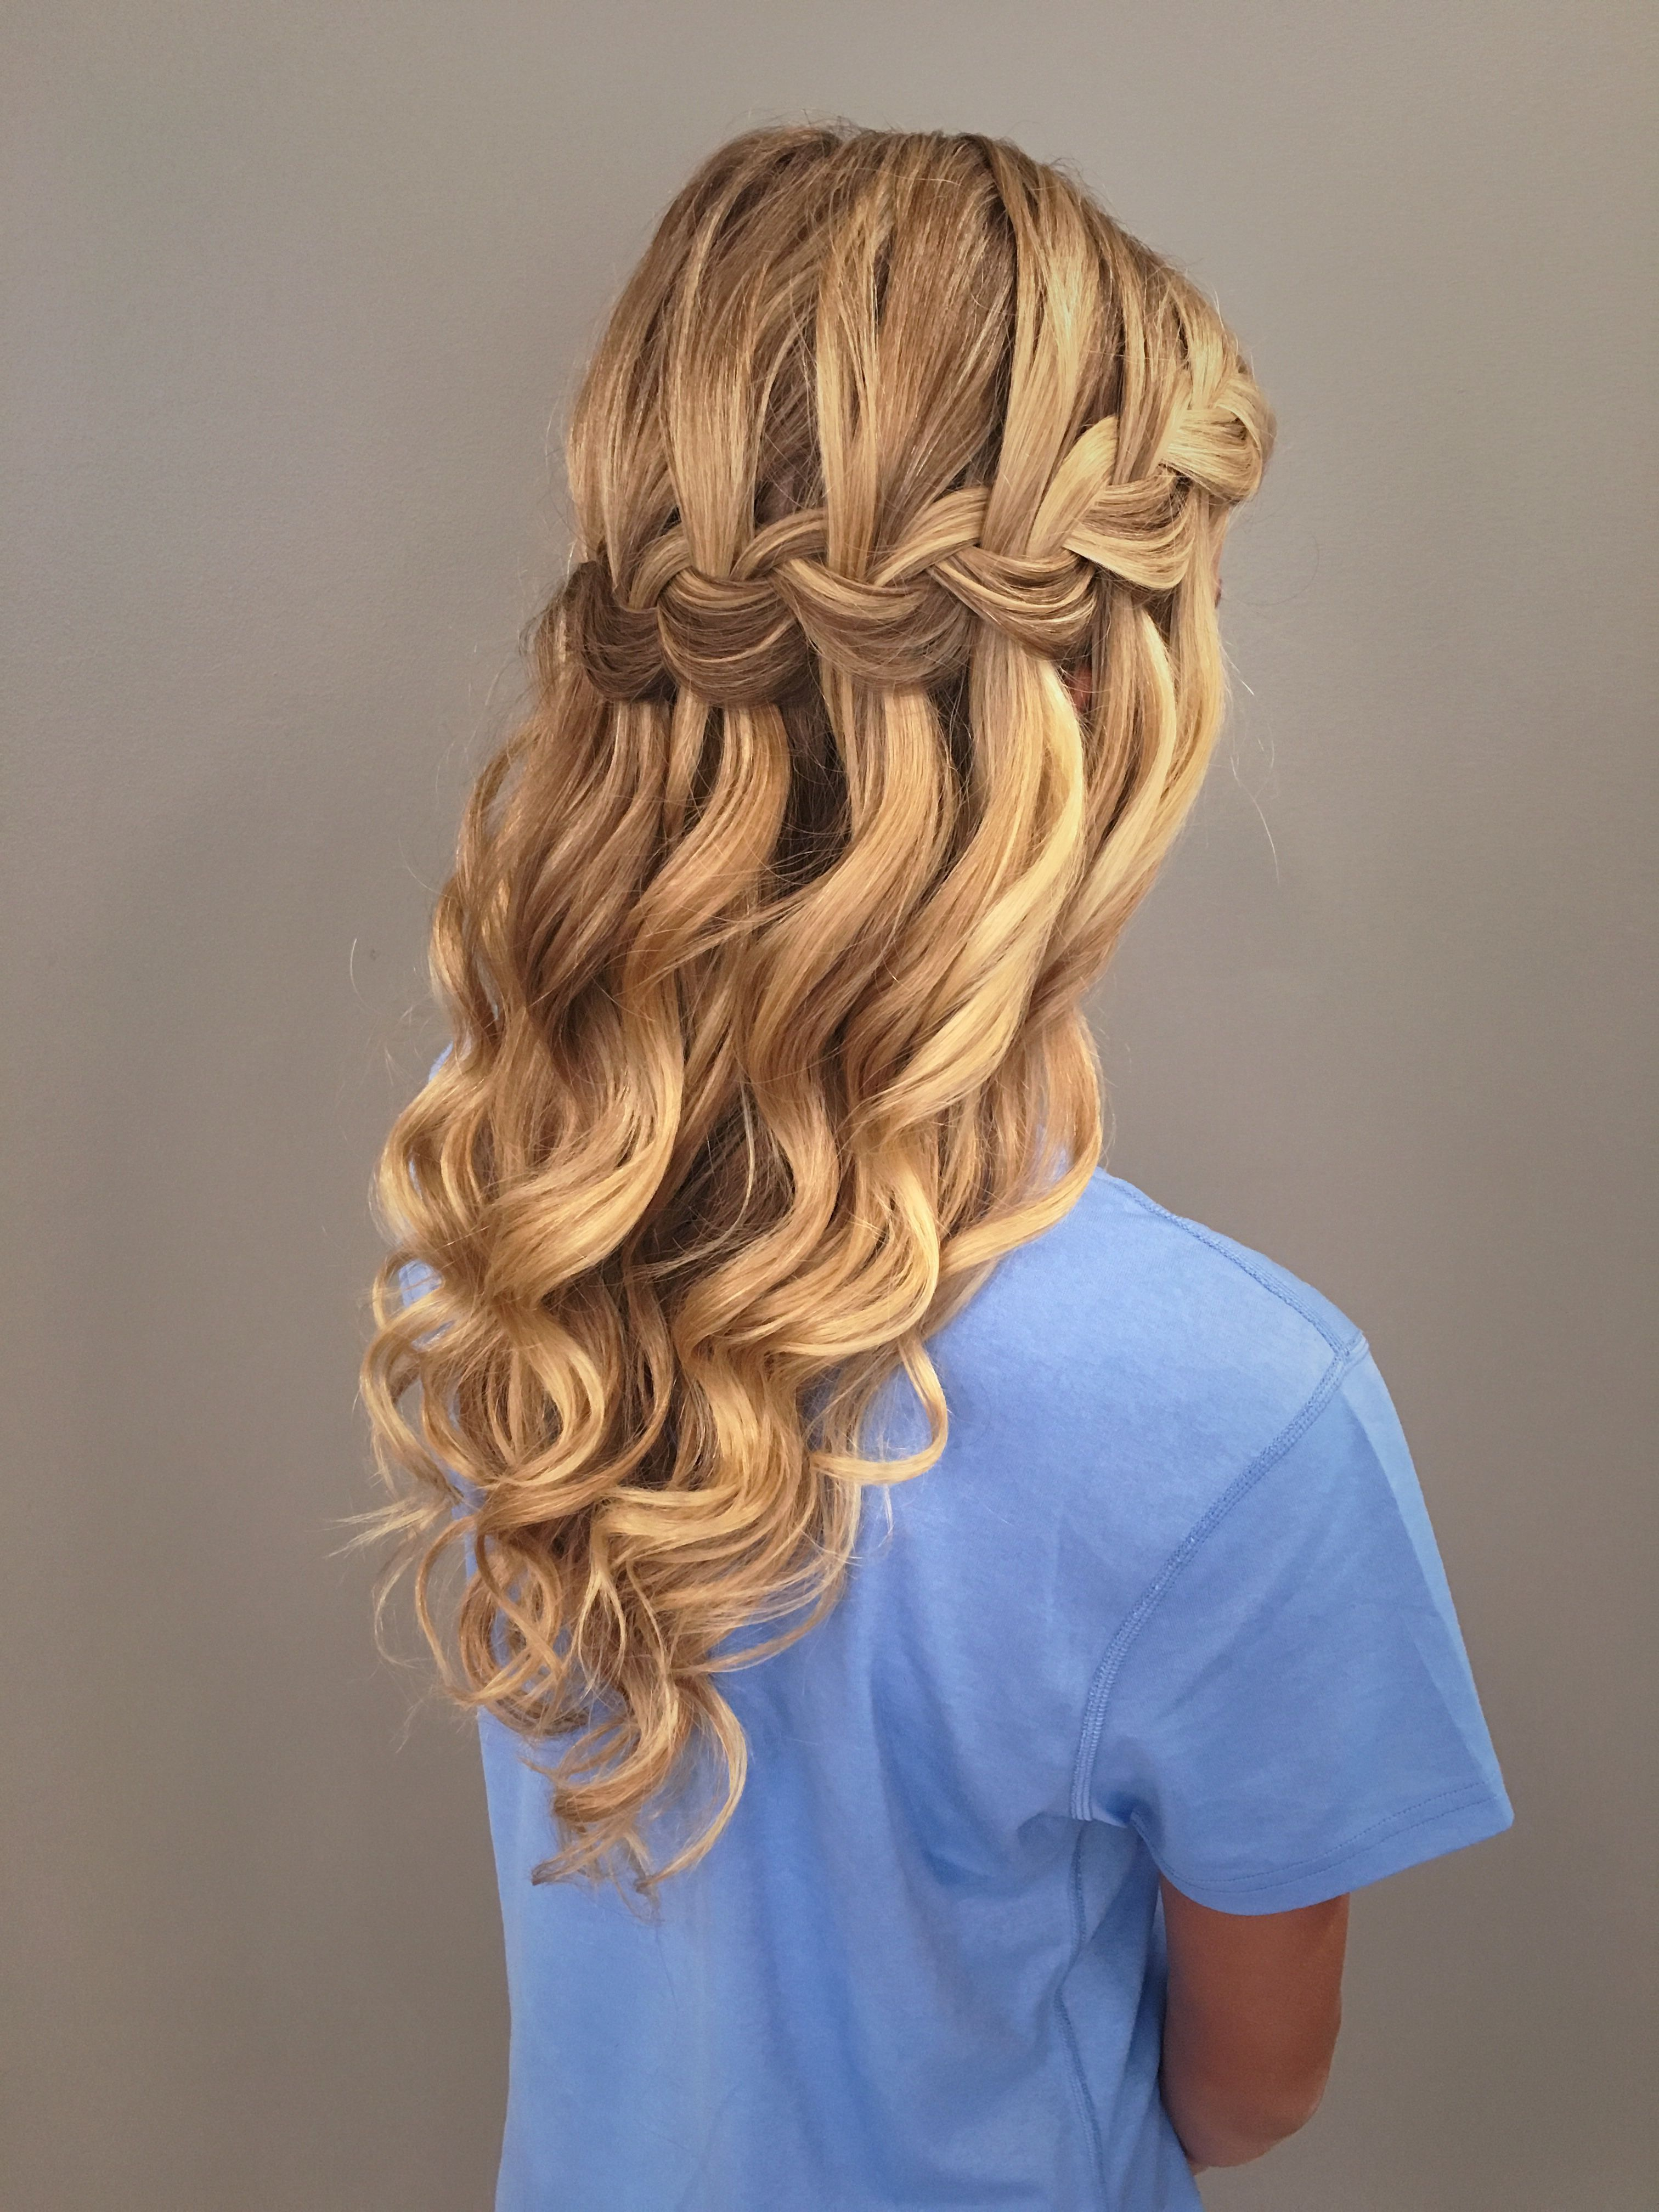 8th Grade Formal Hairstyles For Short Hair Formal Grade Hairstyles Hairstylesfor Cute Hairstyles For Short Hair Waterfall Braid Hairstyle Braided Prom Hair